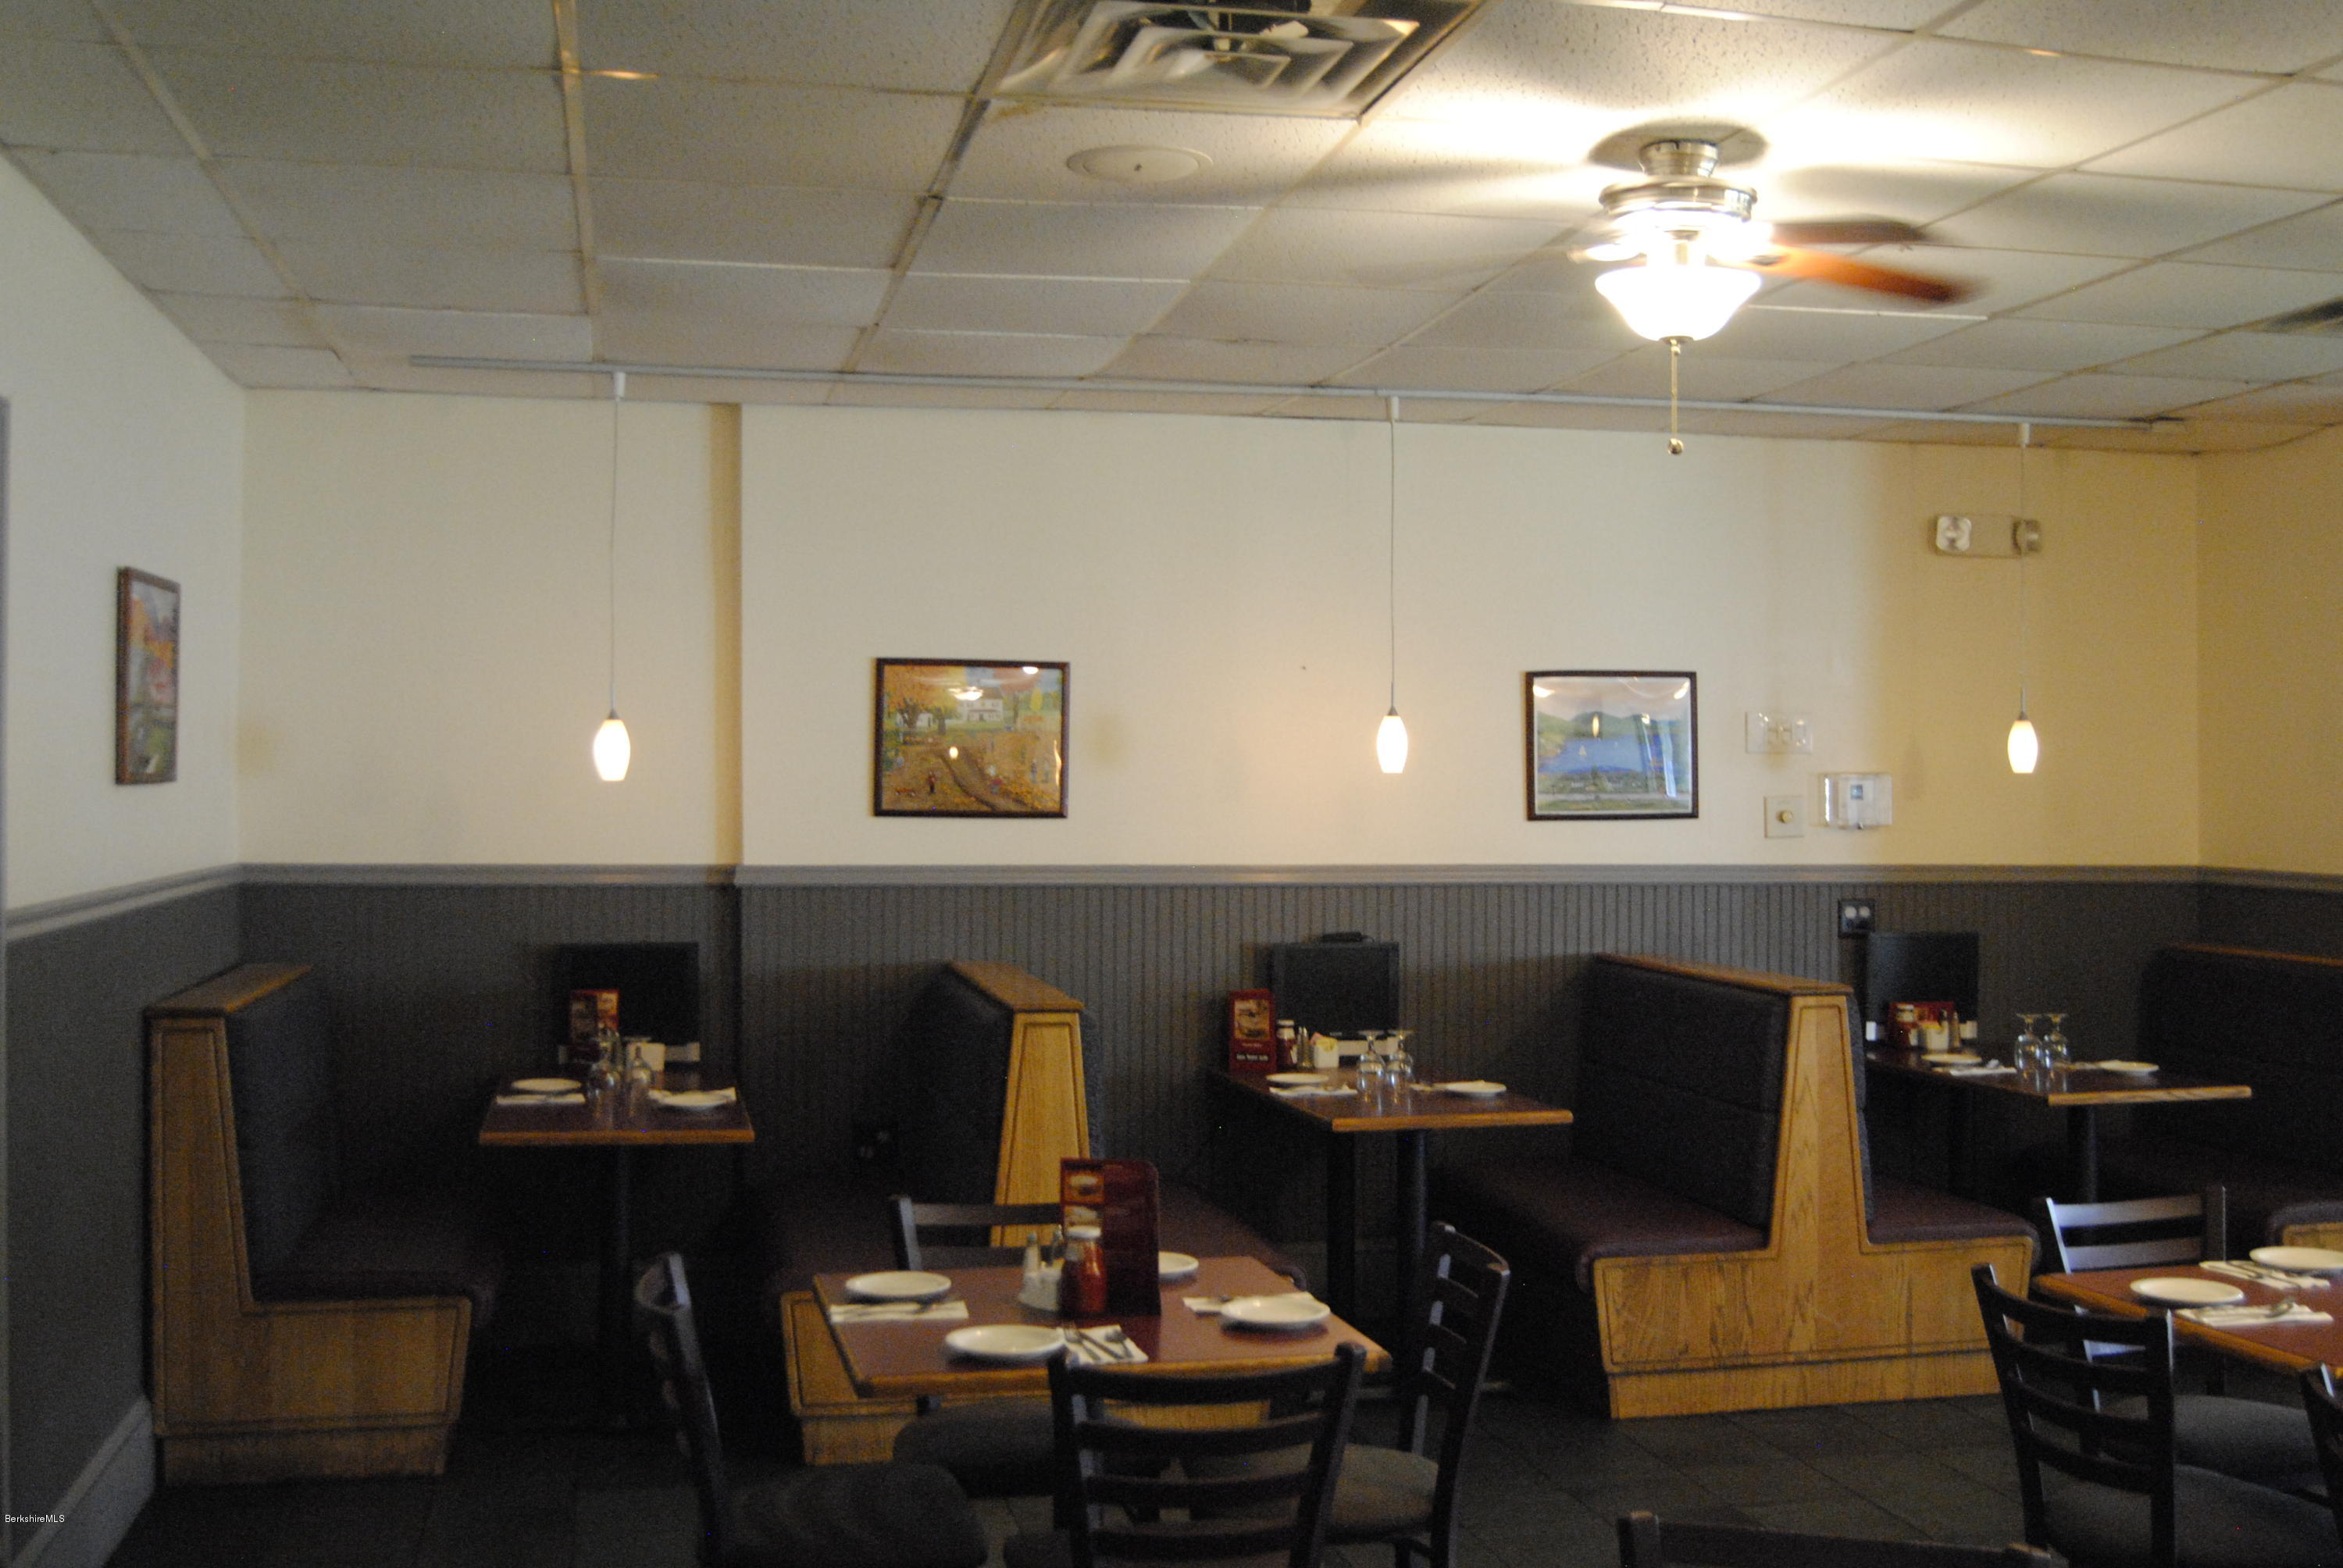 Dining Area with Booths